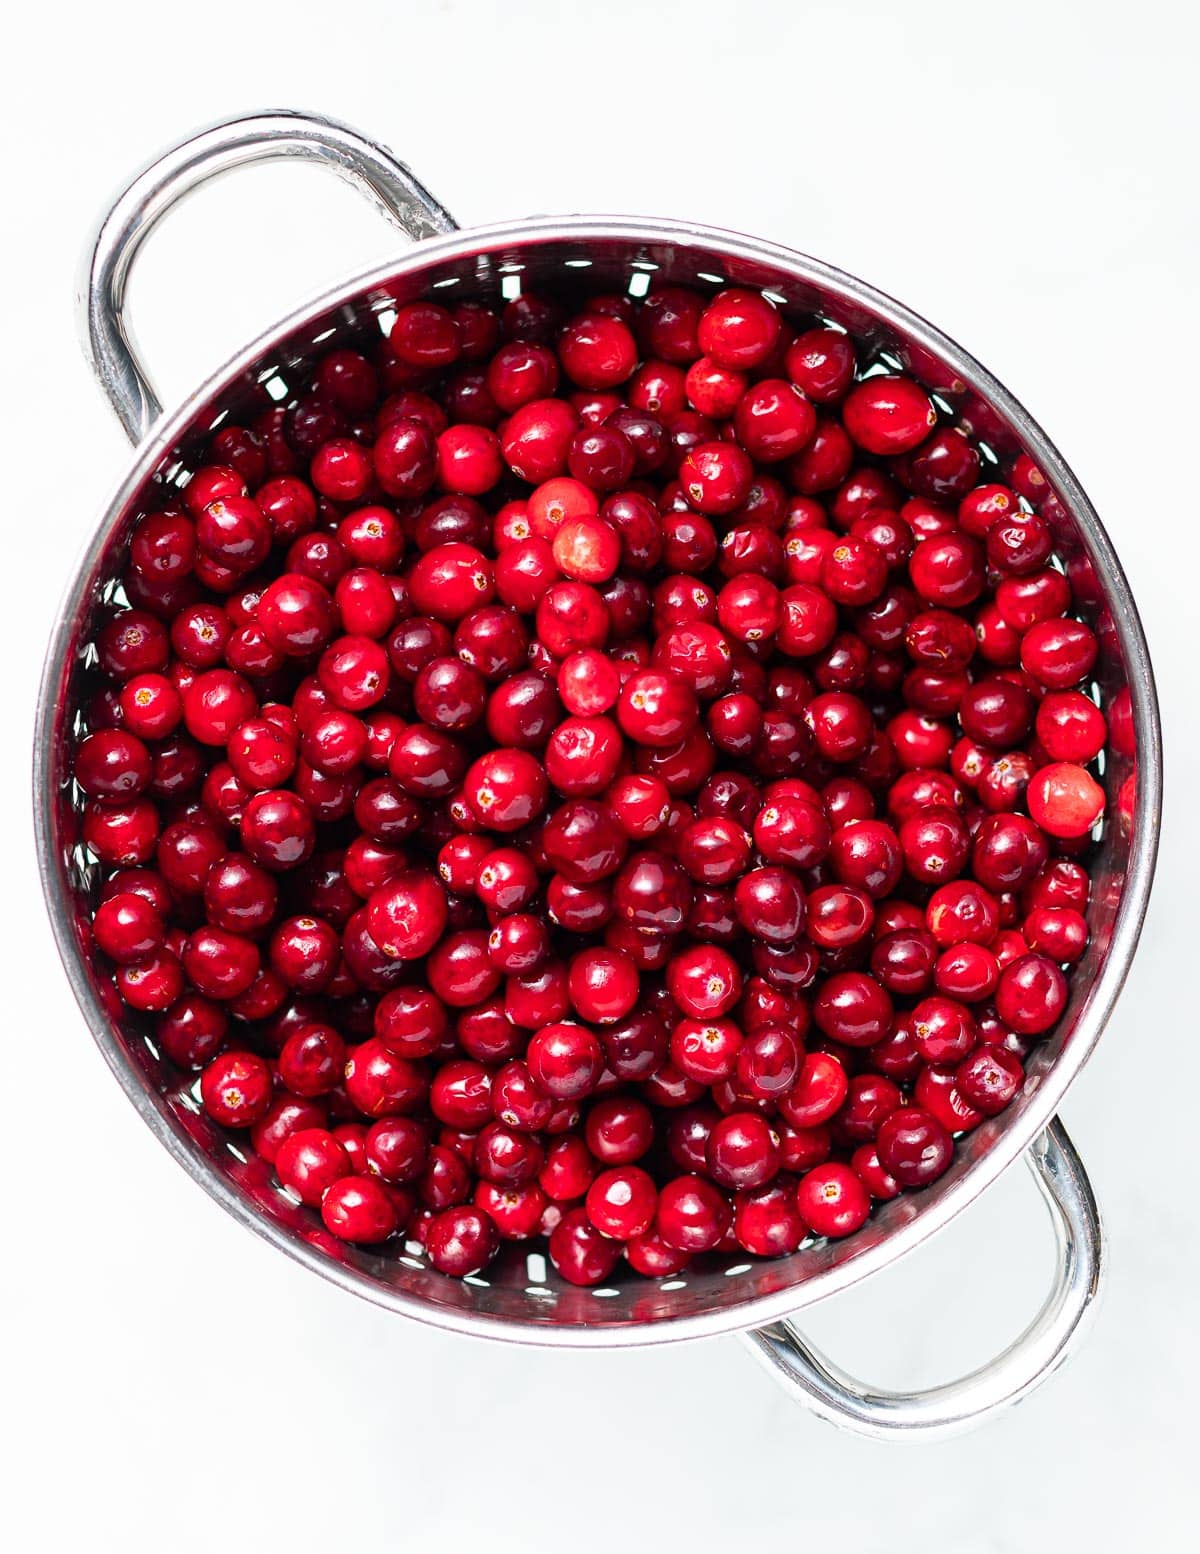 cranberries in a colander